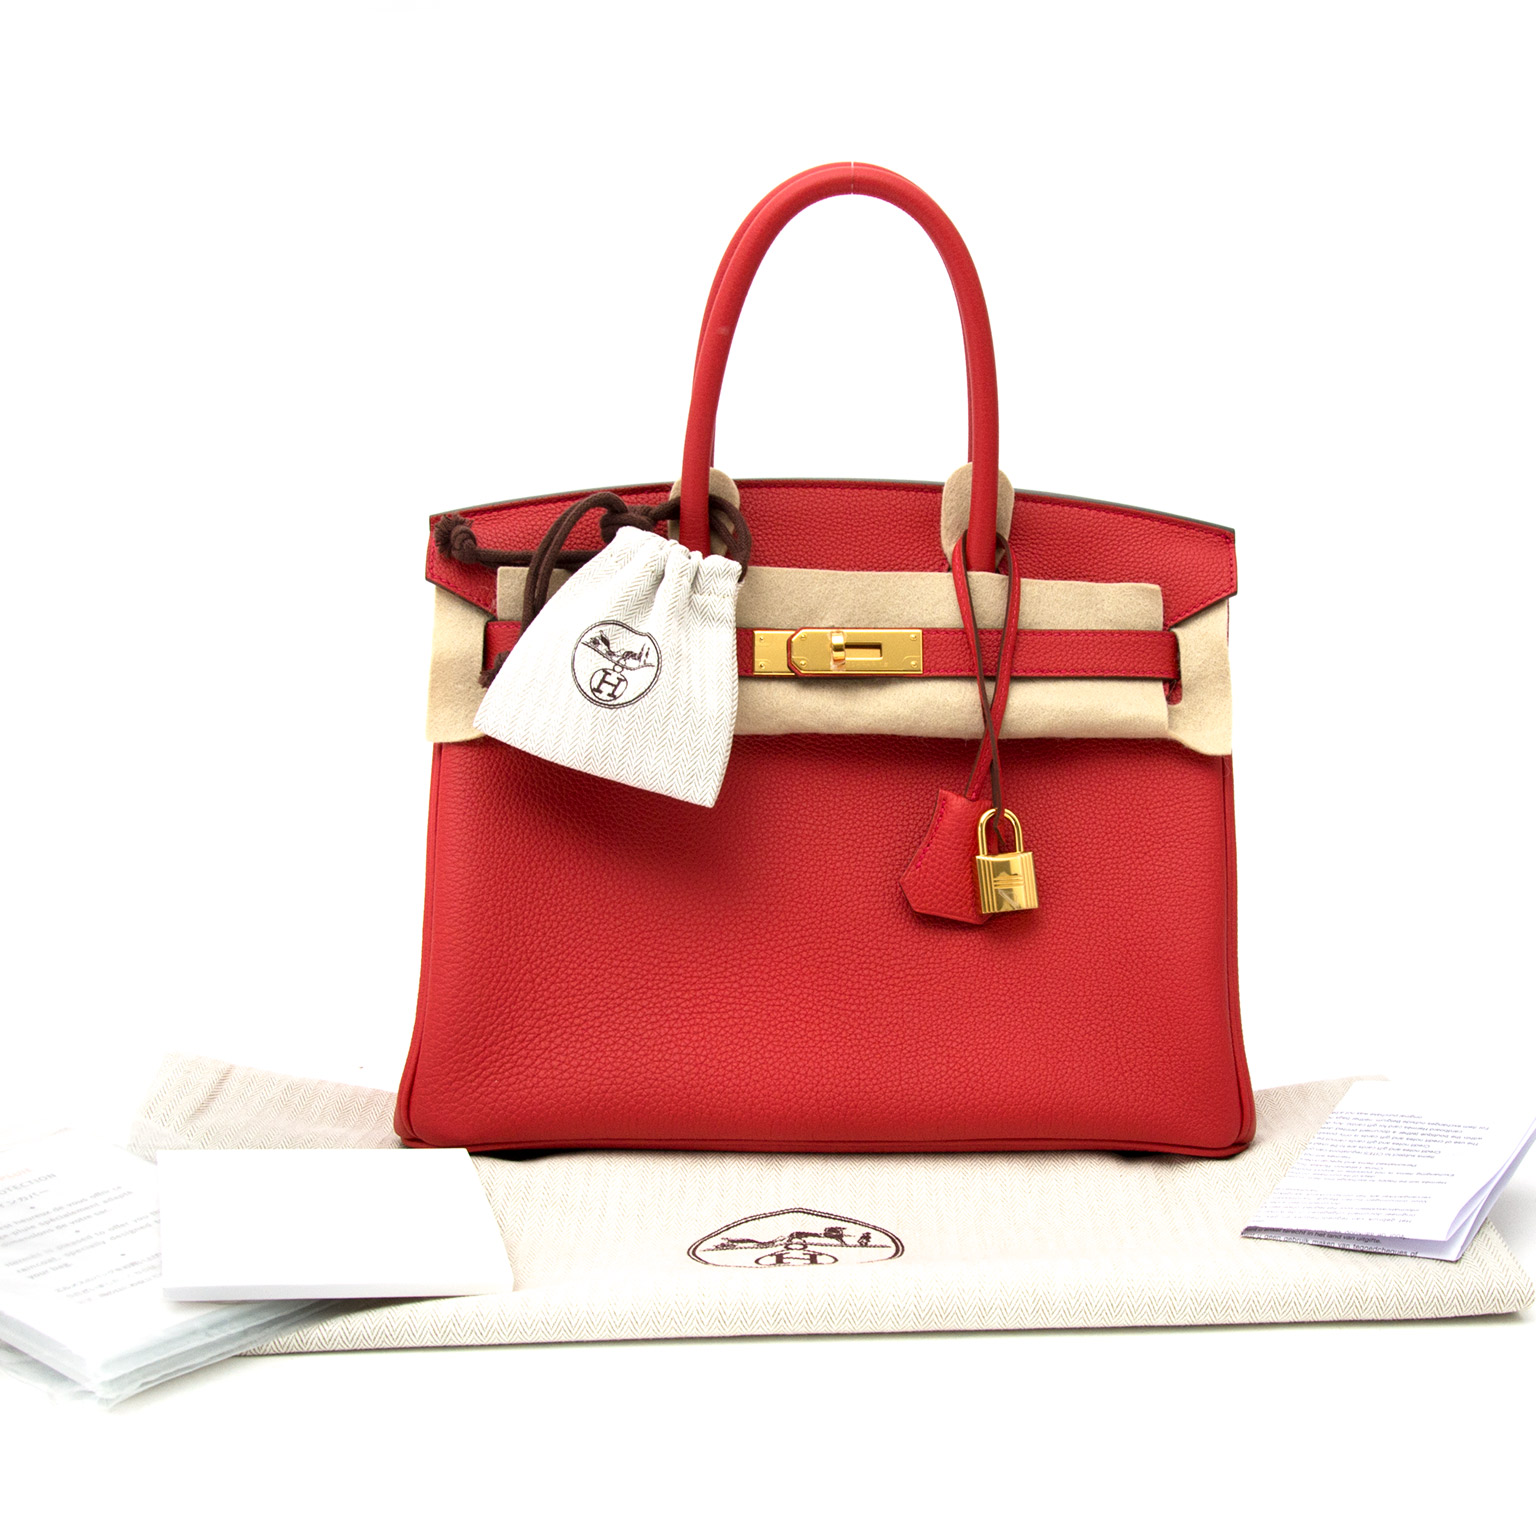 We buy and sell your Hermès Birkin 30 Togo Geranium GHW for the best prices of 2017